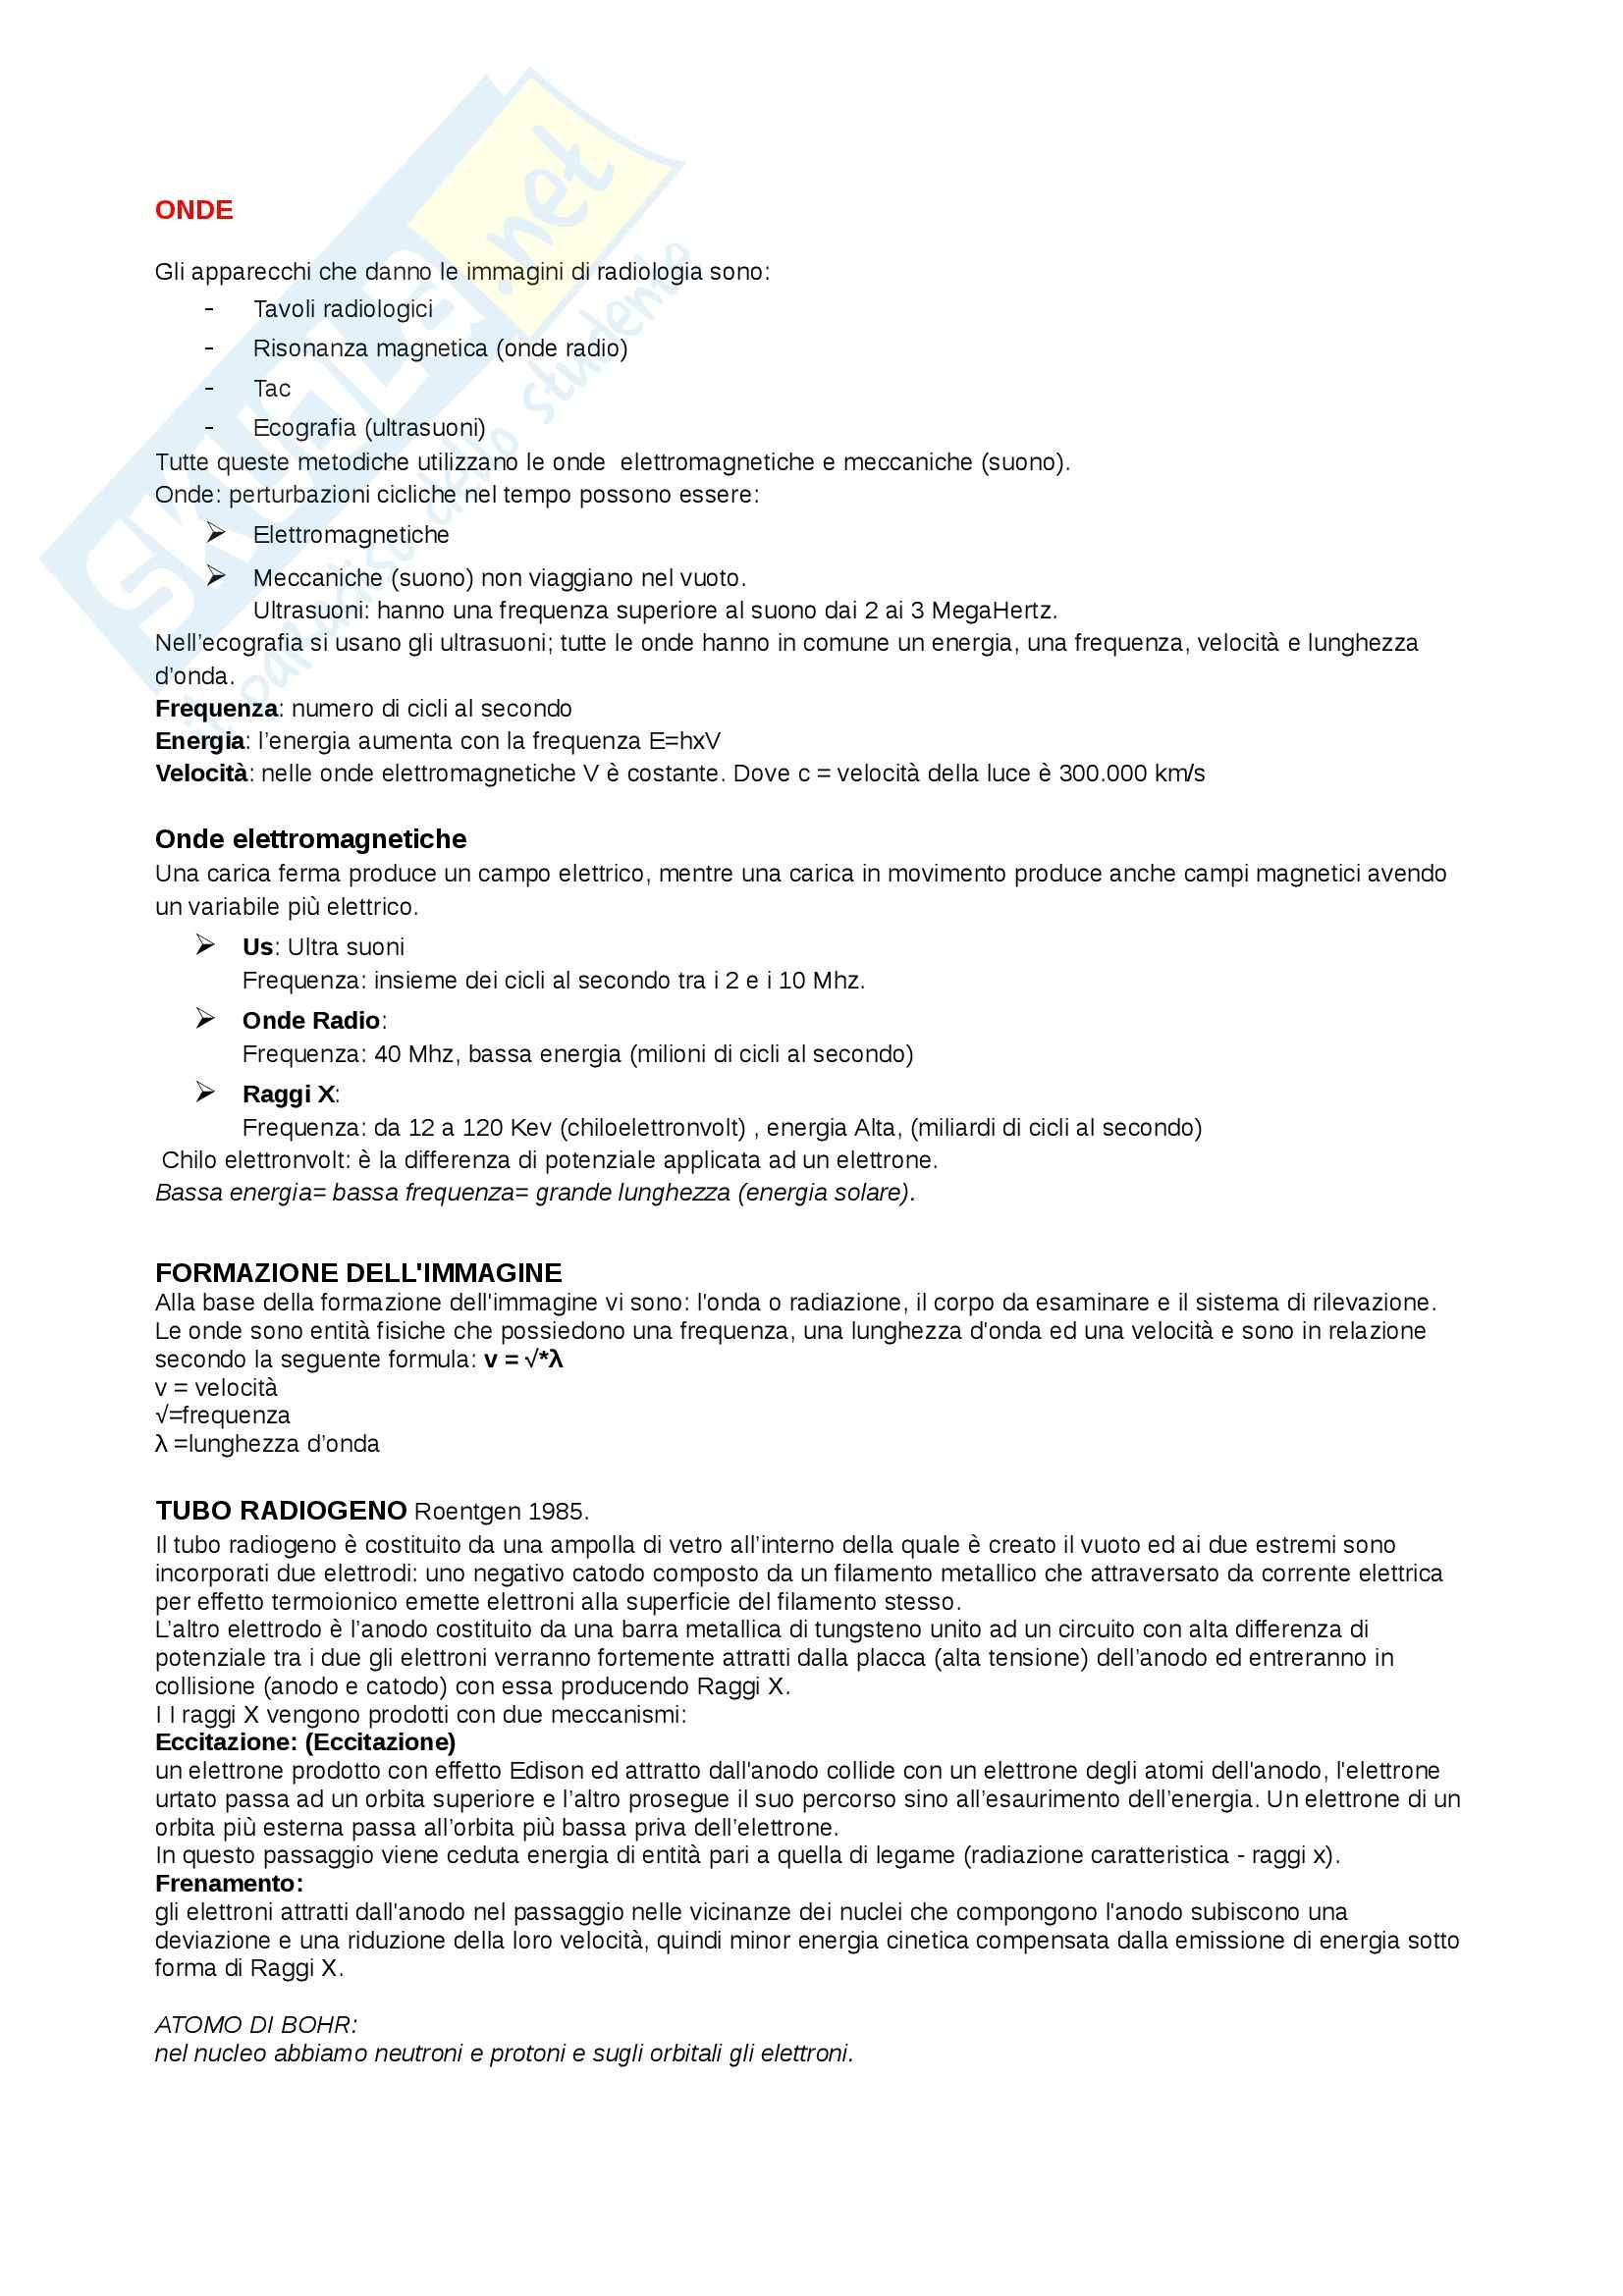 Radiologia - Appunti Pag. 1